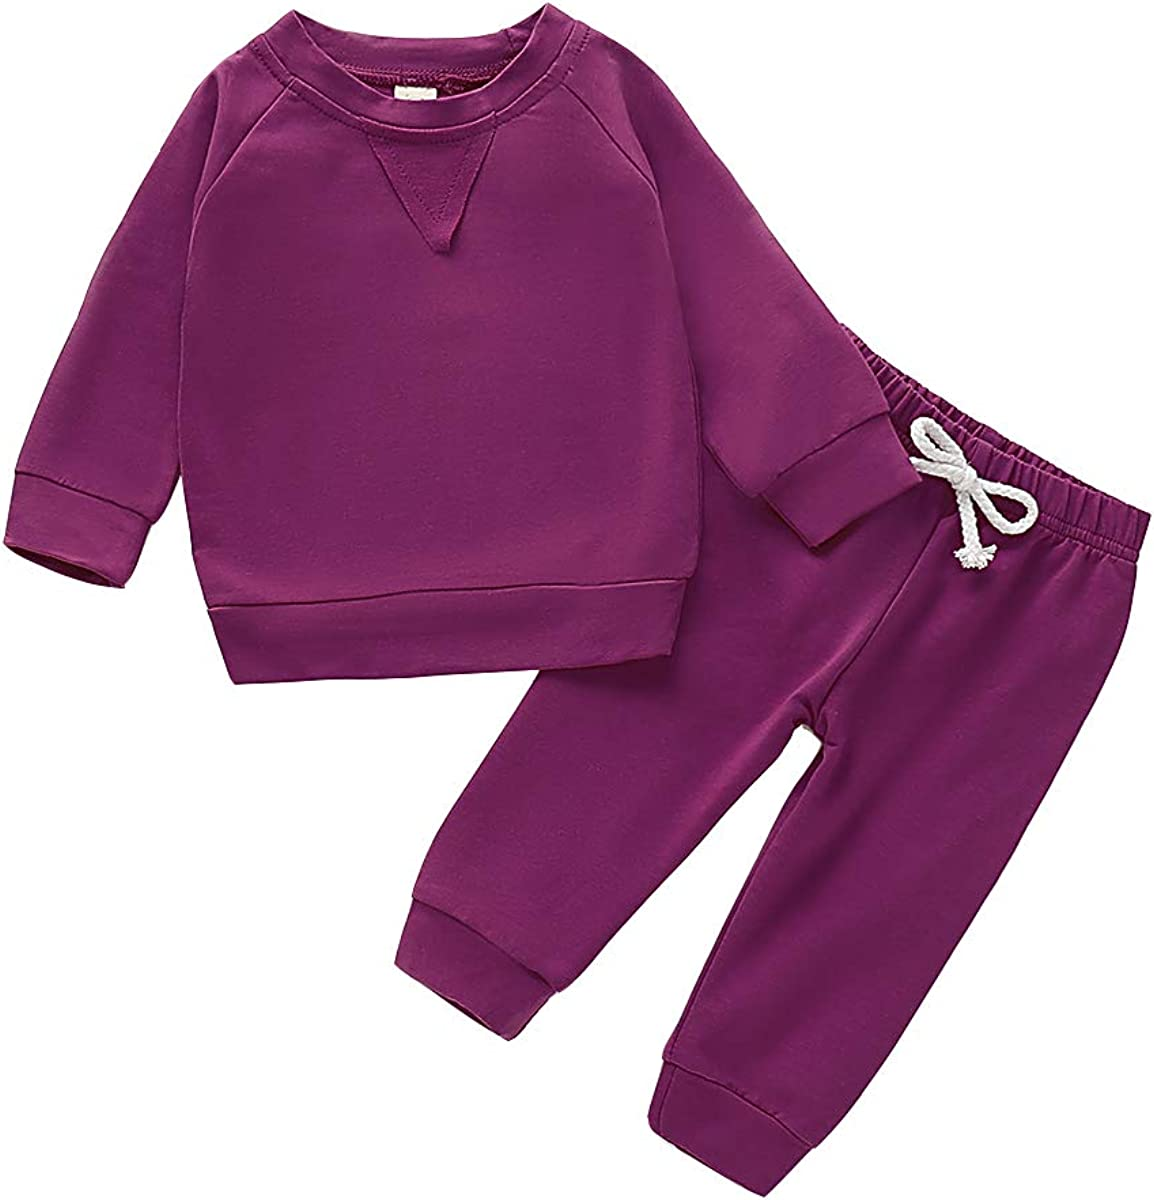 Fall Outfits Set Toddler Baby Boy Girl Long Sleeve Top and Long Pants Solid Color Pajamas Sets